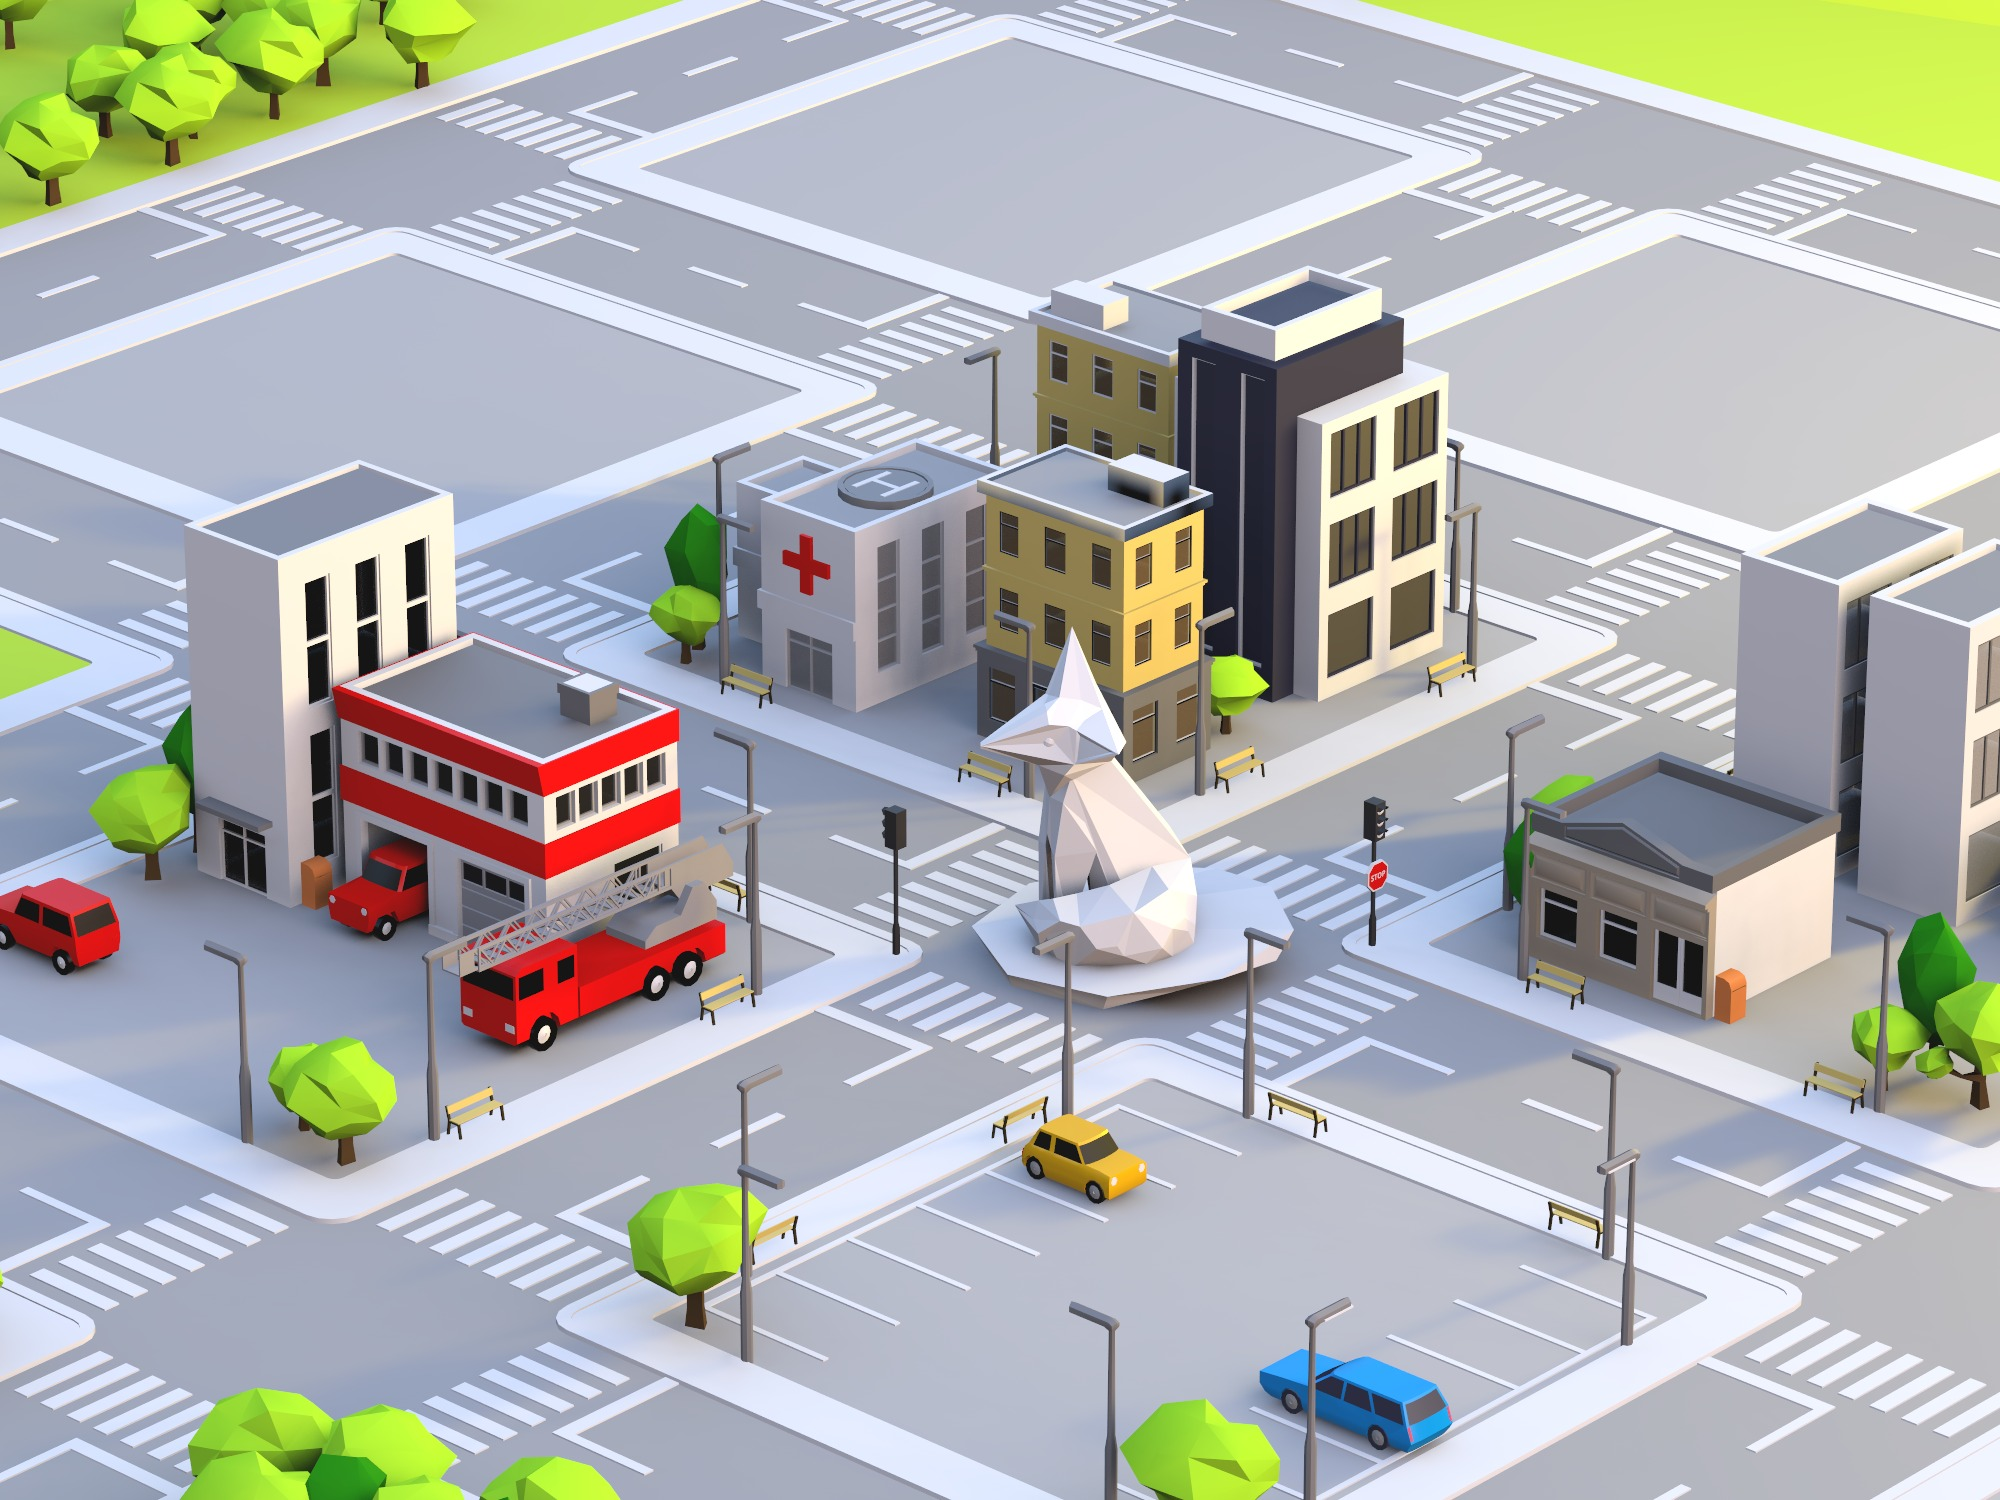 Build a city - drag and drop objects (copy) (copy) - 3D design by VL0NE BEATS on Dec 14, 2018